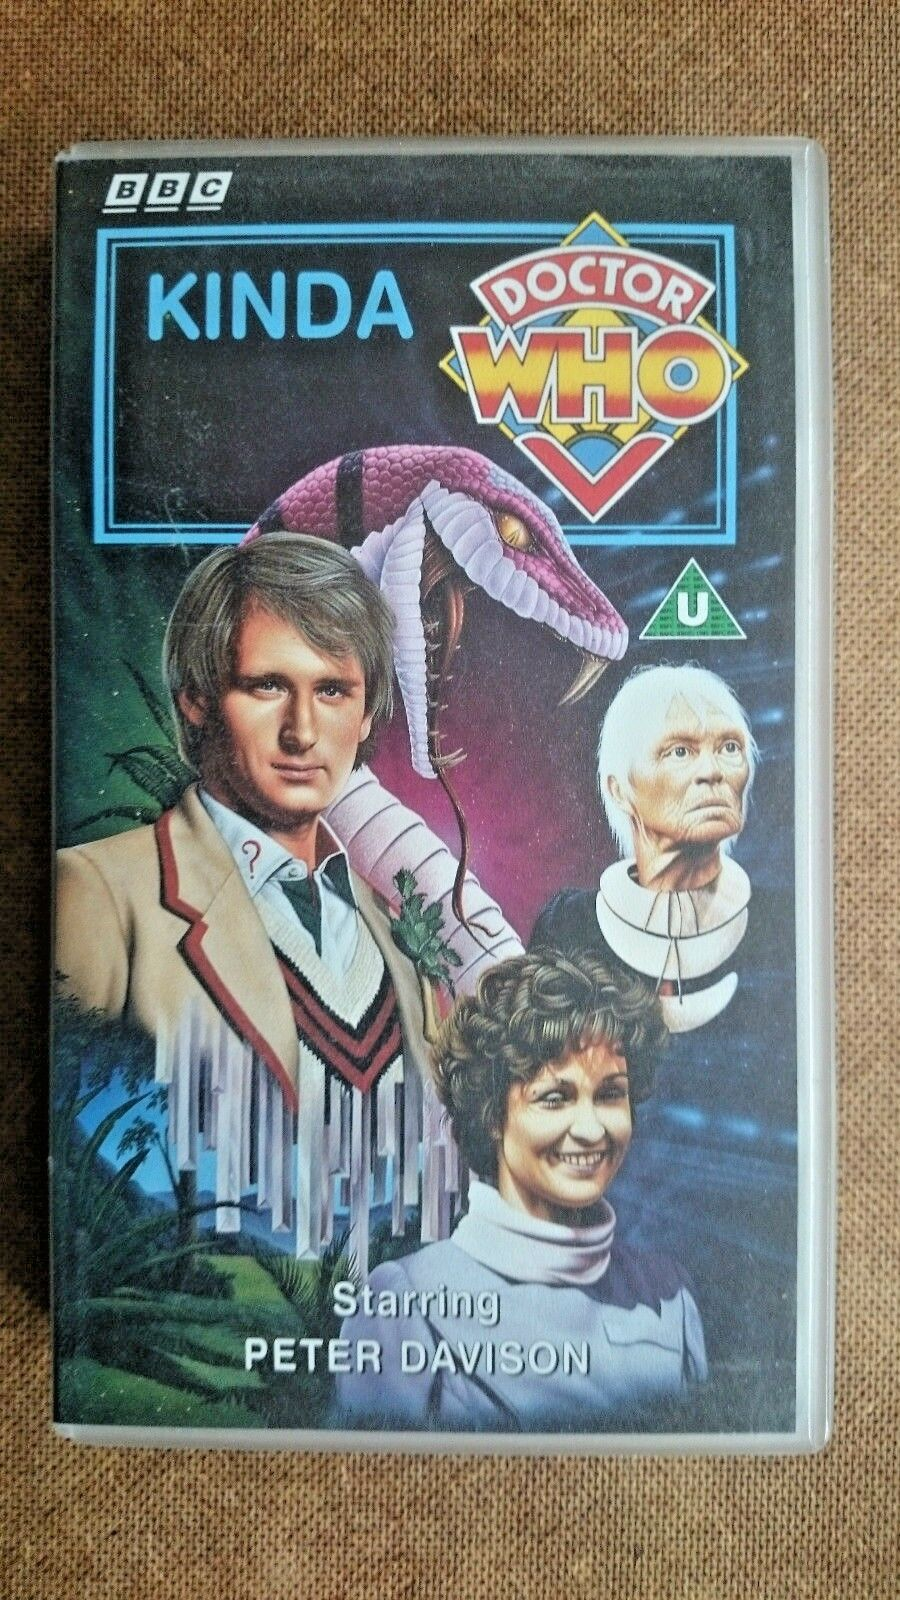 Doctor Who - Kinda (VHS, 1994) Peter Davidson